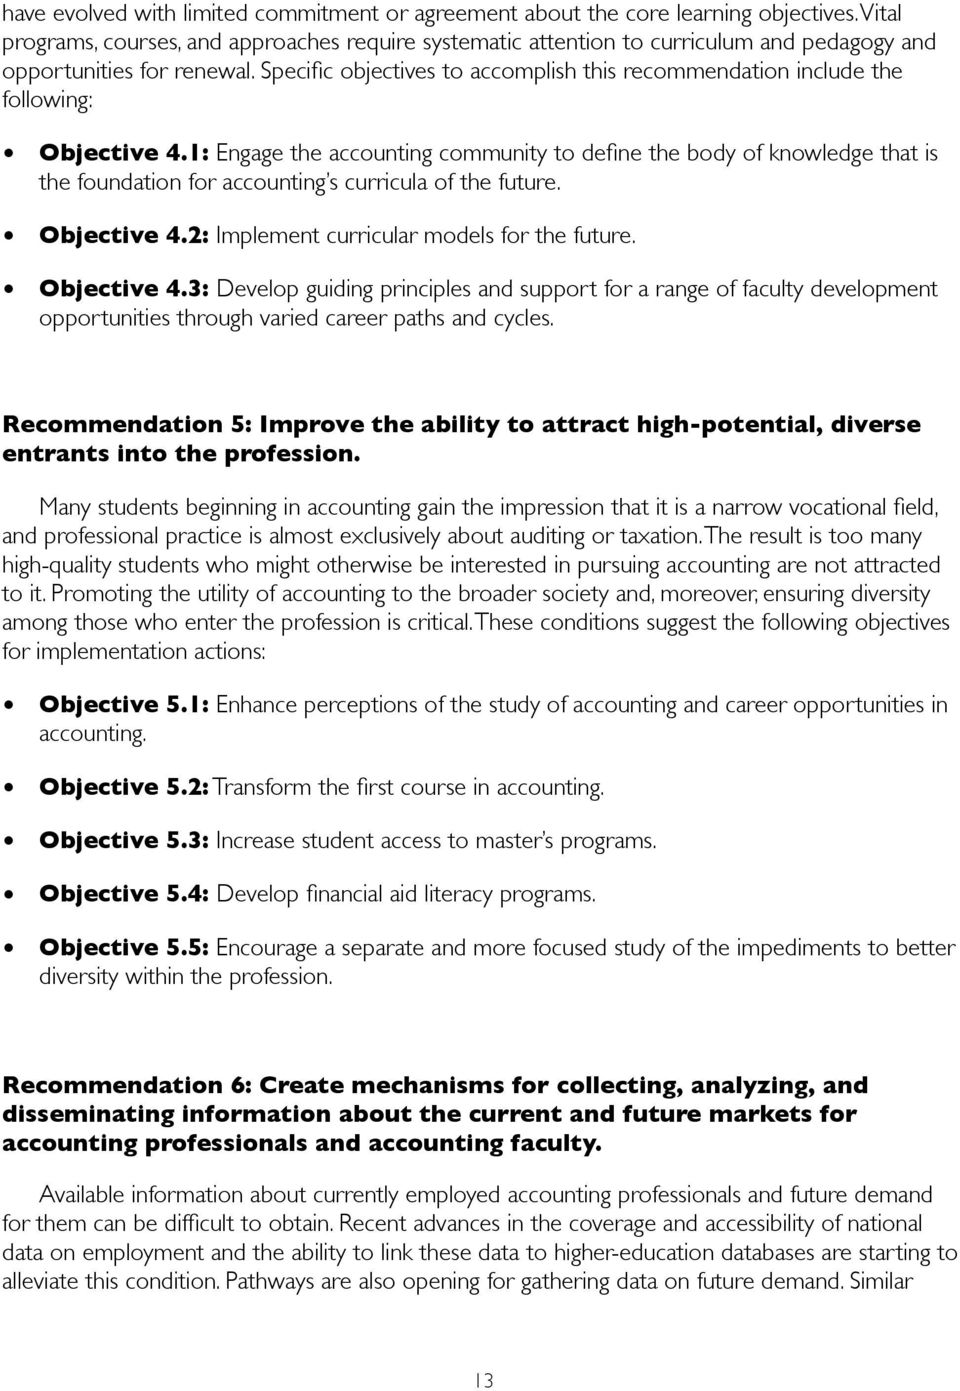 Specific objectives to accomplish this recommendation include the following: Objective 4.